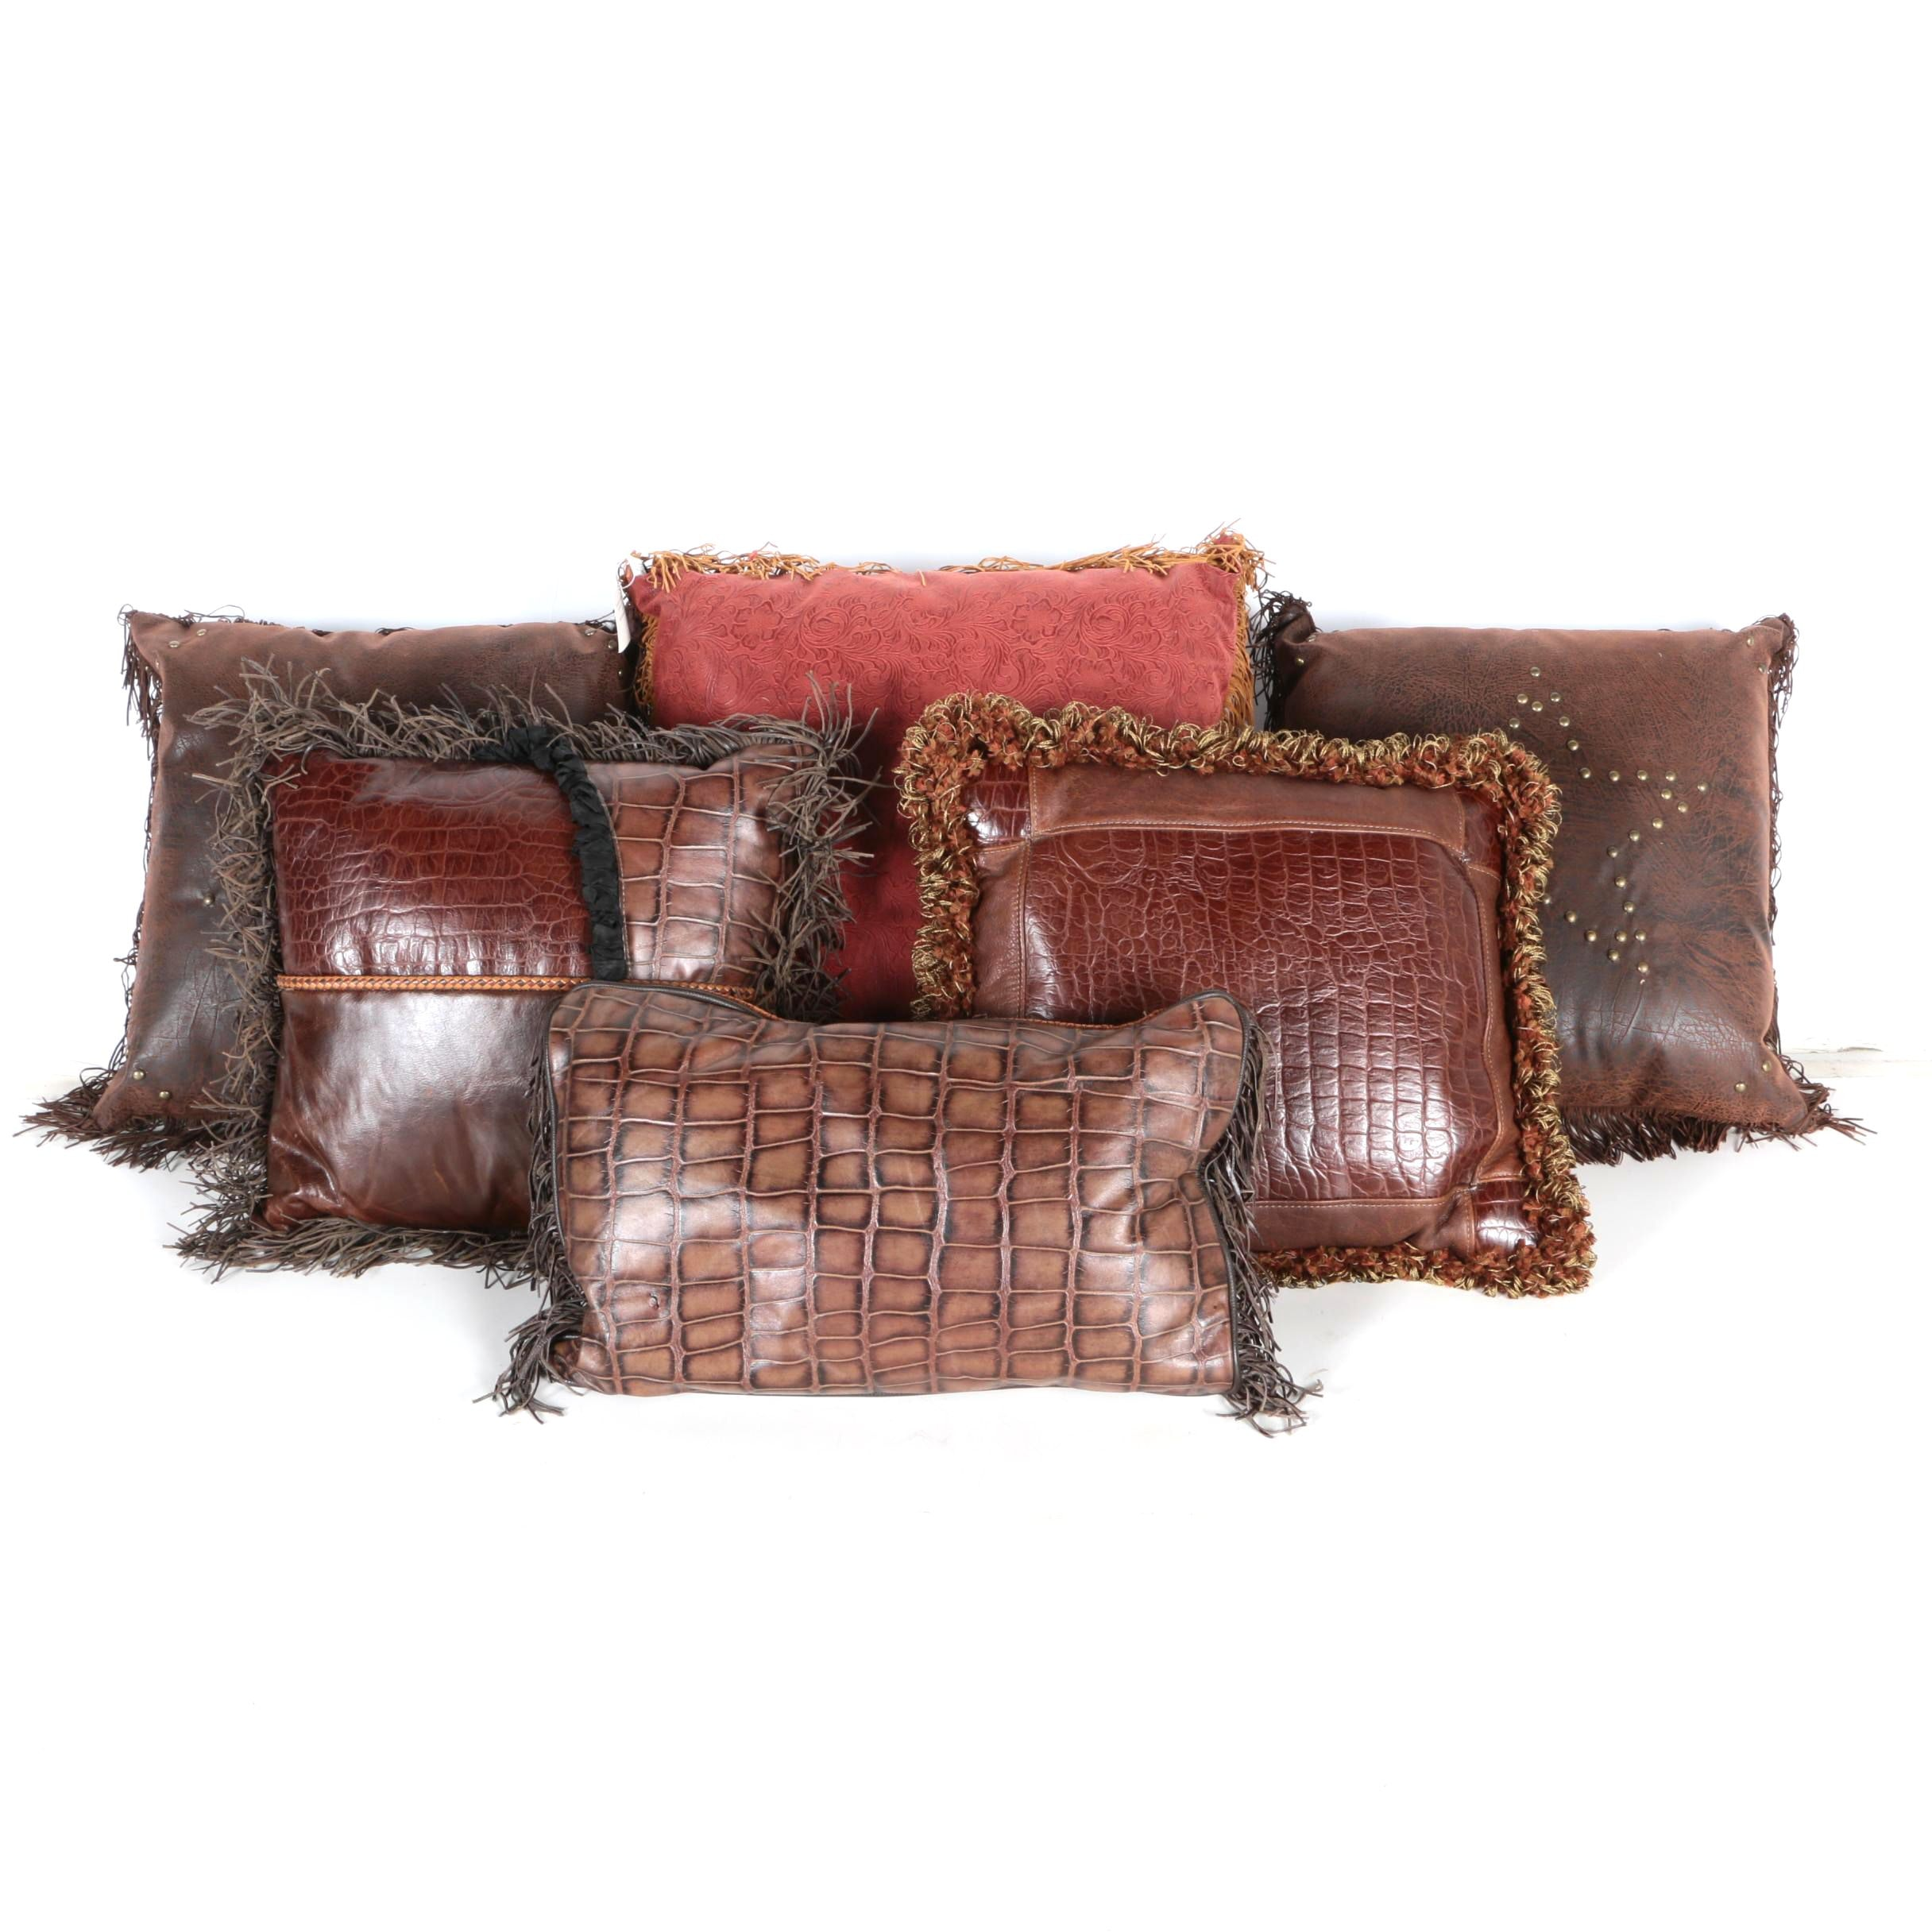 Decorative Throw Pillows with Faux Leather and Fringe